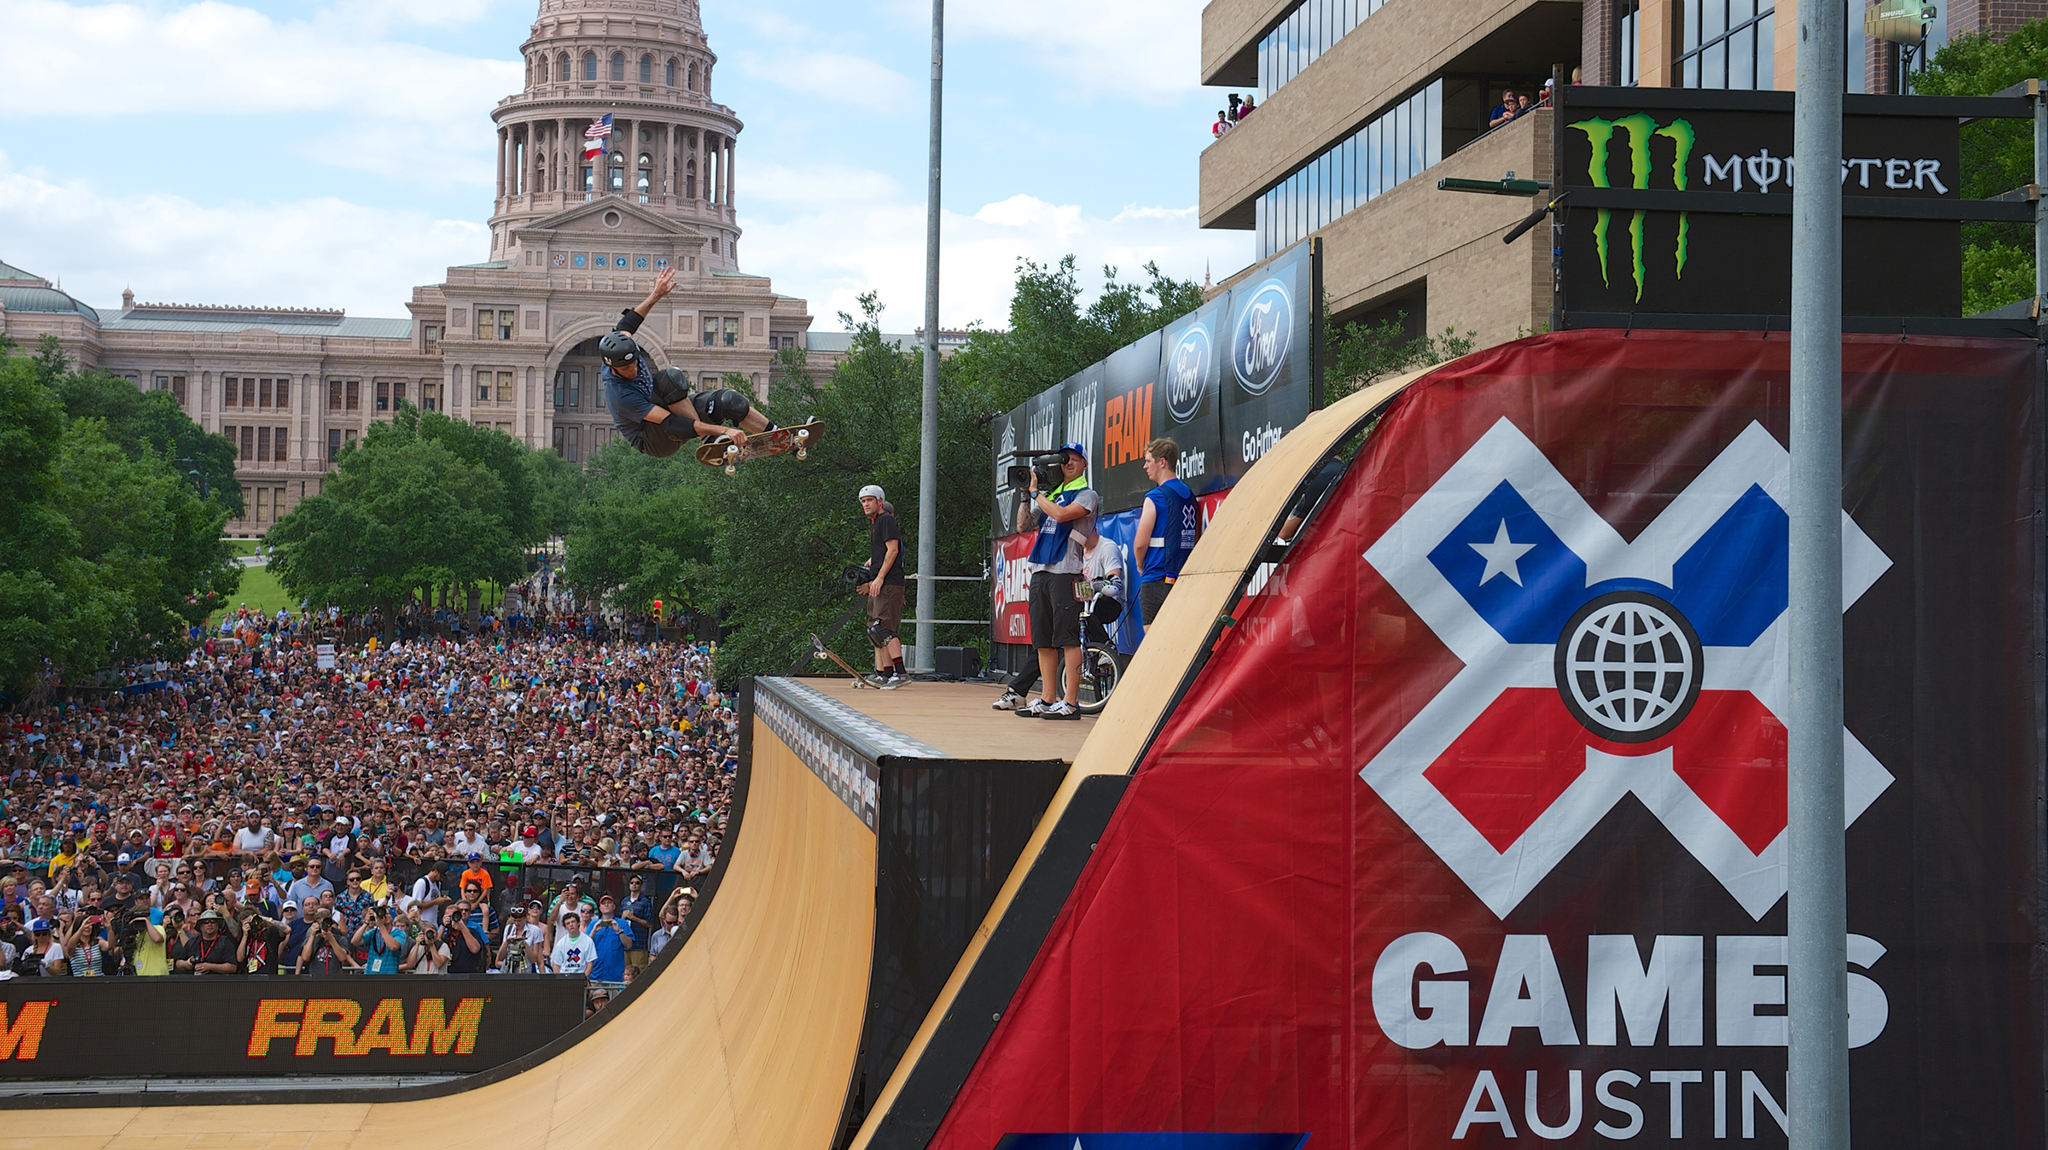 Tony Hawk performs a skate demo on a halfpipe in downtown Austin, Texas during the inaugural X Games Austin in 2014.